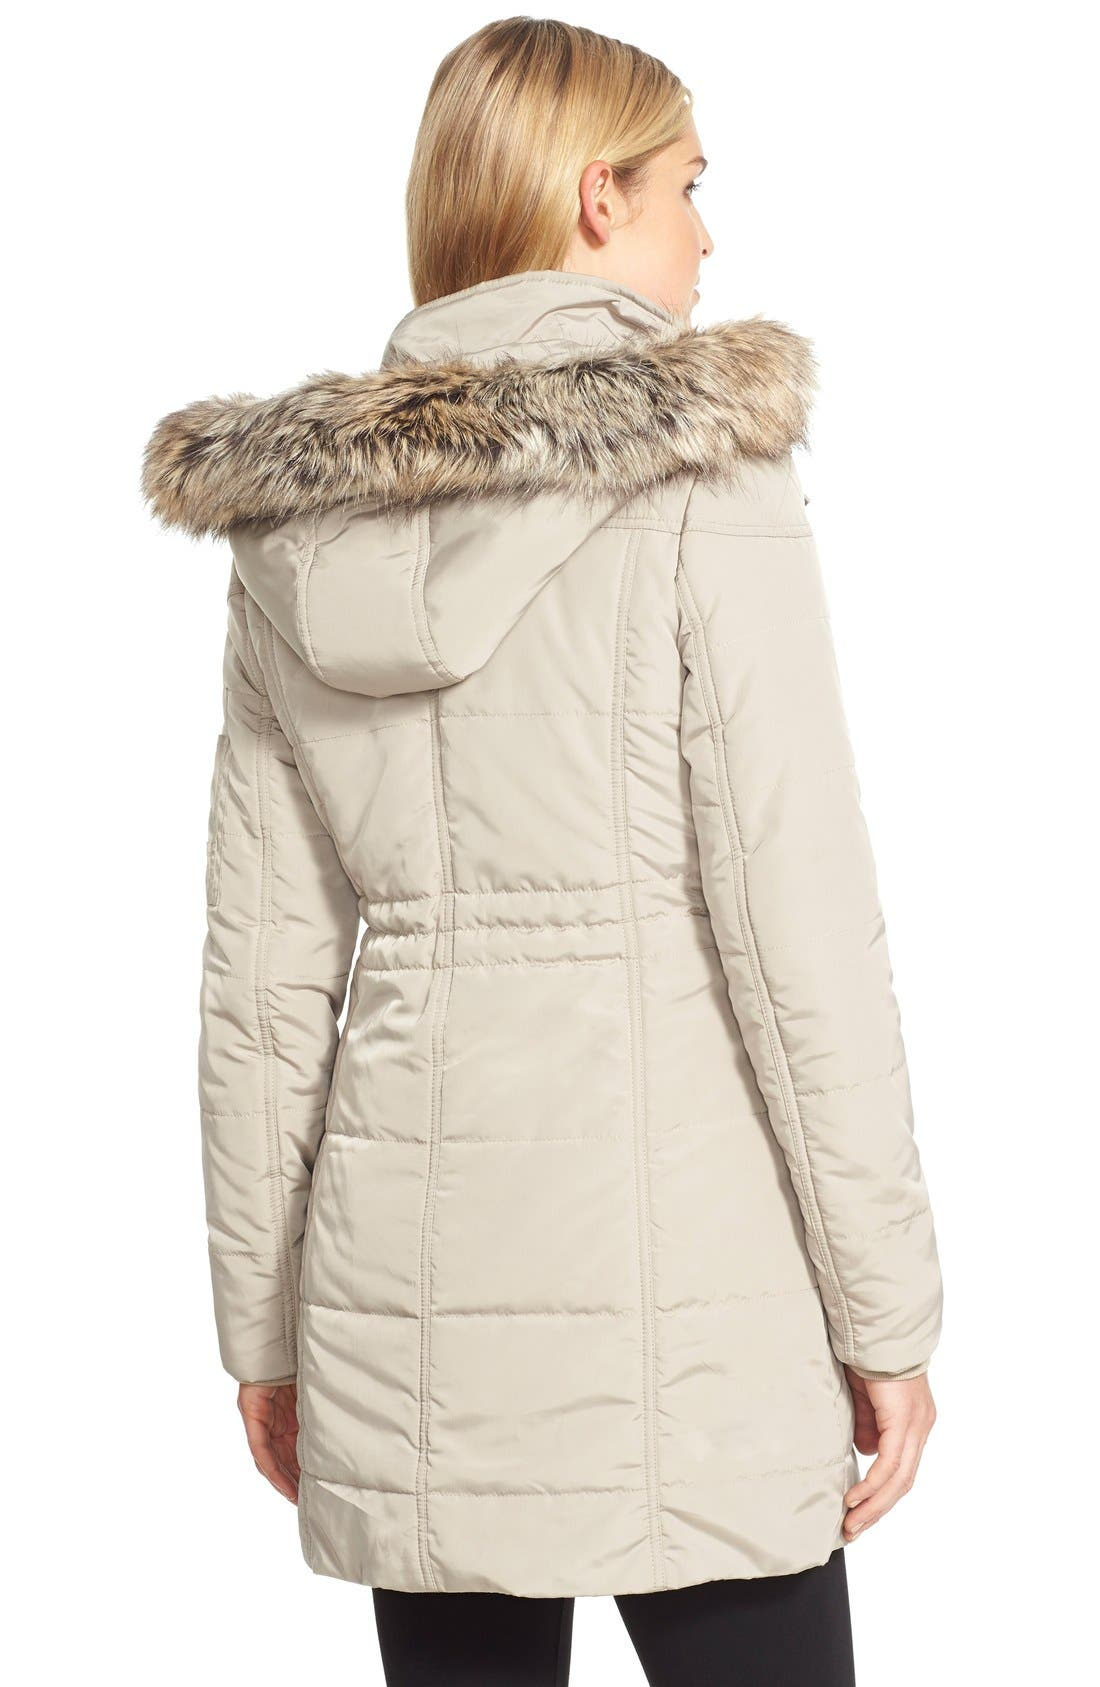 BCBGENERATION,                             FauxFur Trim Hooded Quilted Coat,                             Alternate thumbnail 3, color,                             275